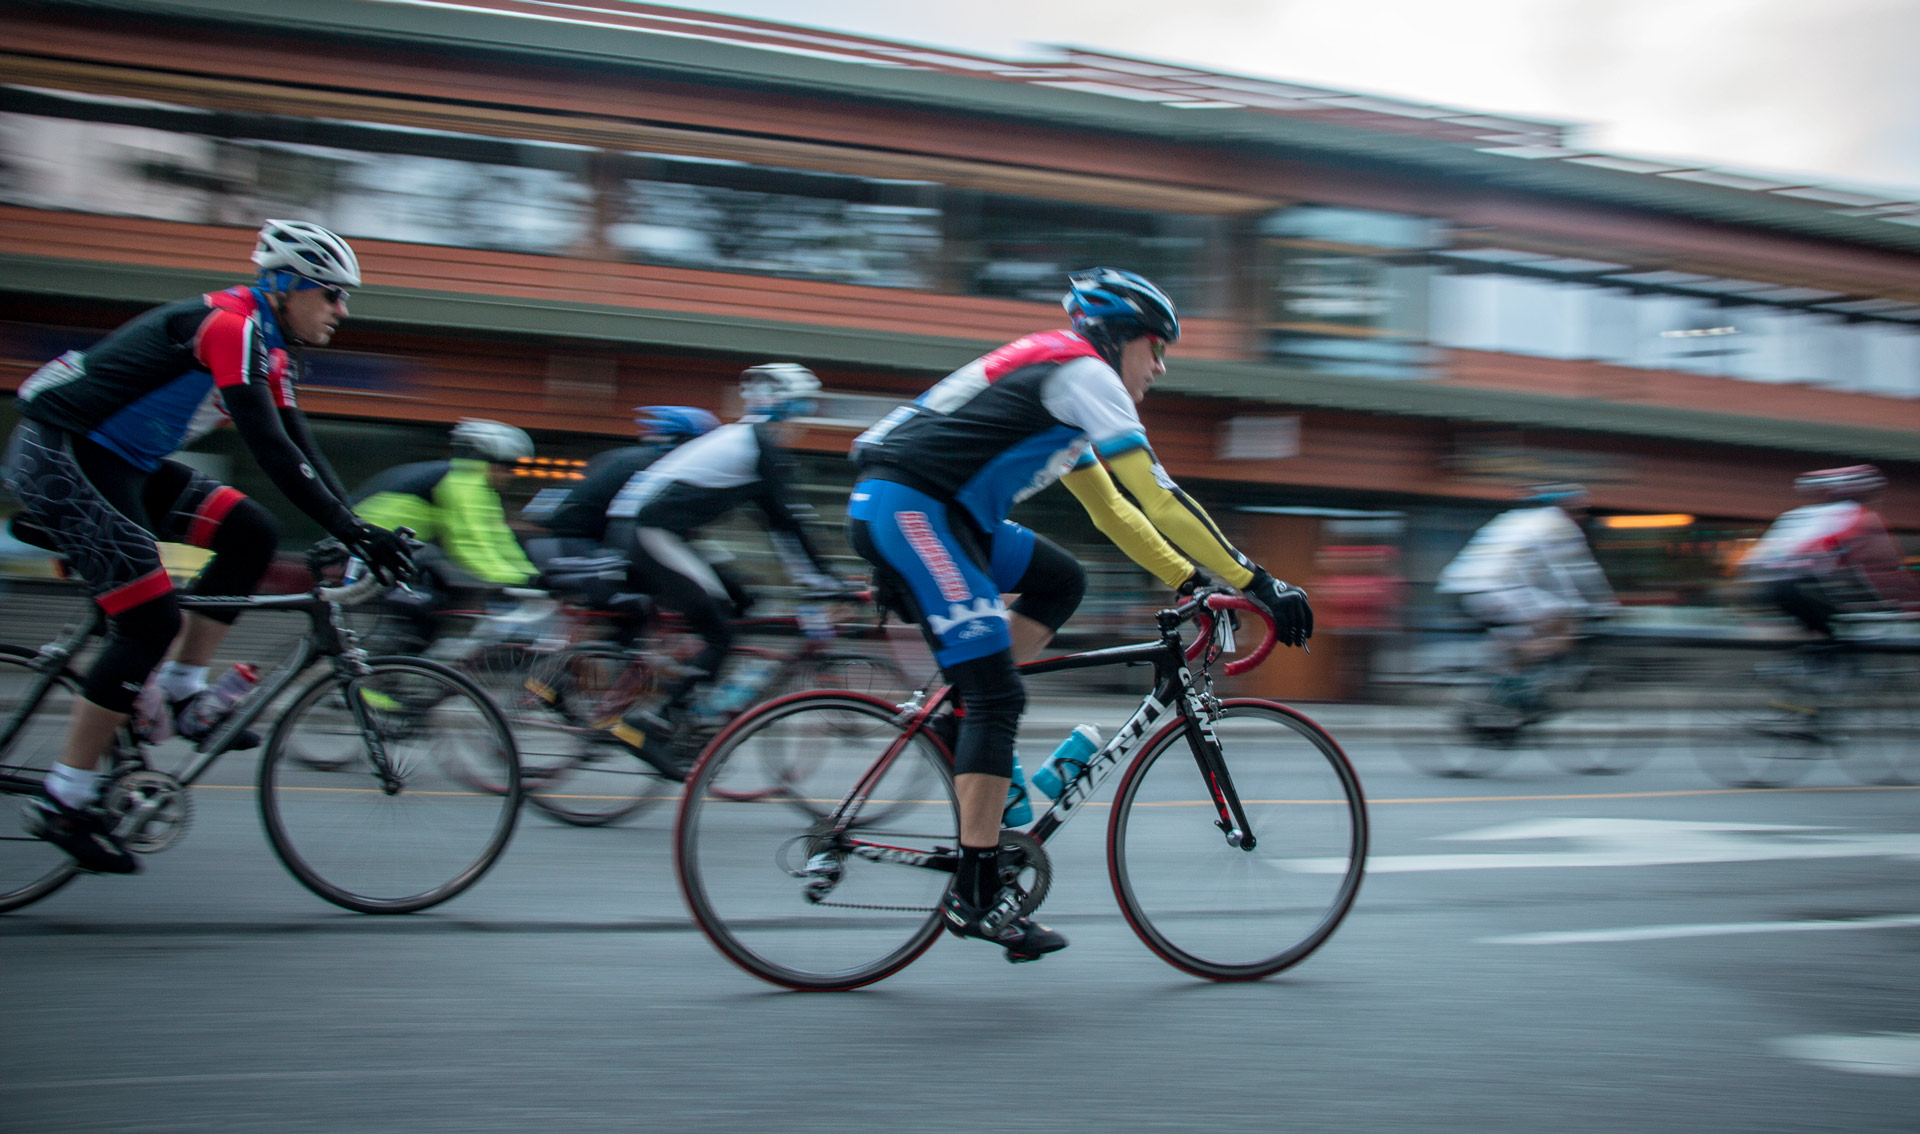 Bike race in full flow in downtown Banff. Gran Fondo is a 100 mile race that takes you in and around the scenic mountains of Banff.